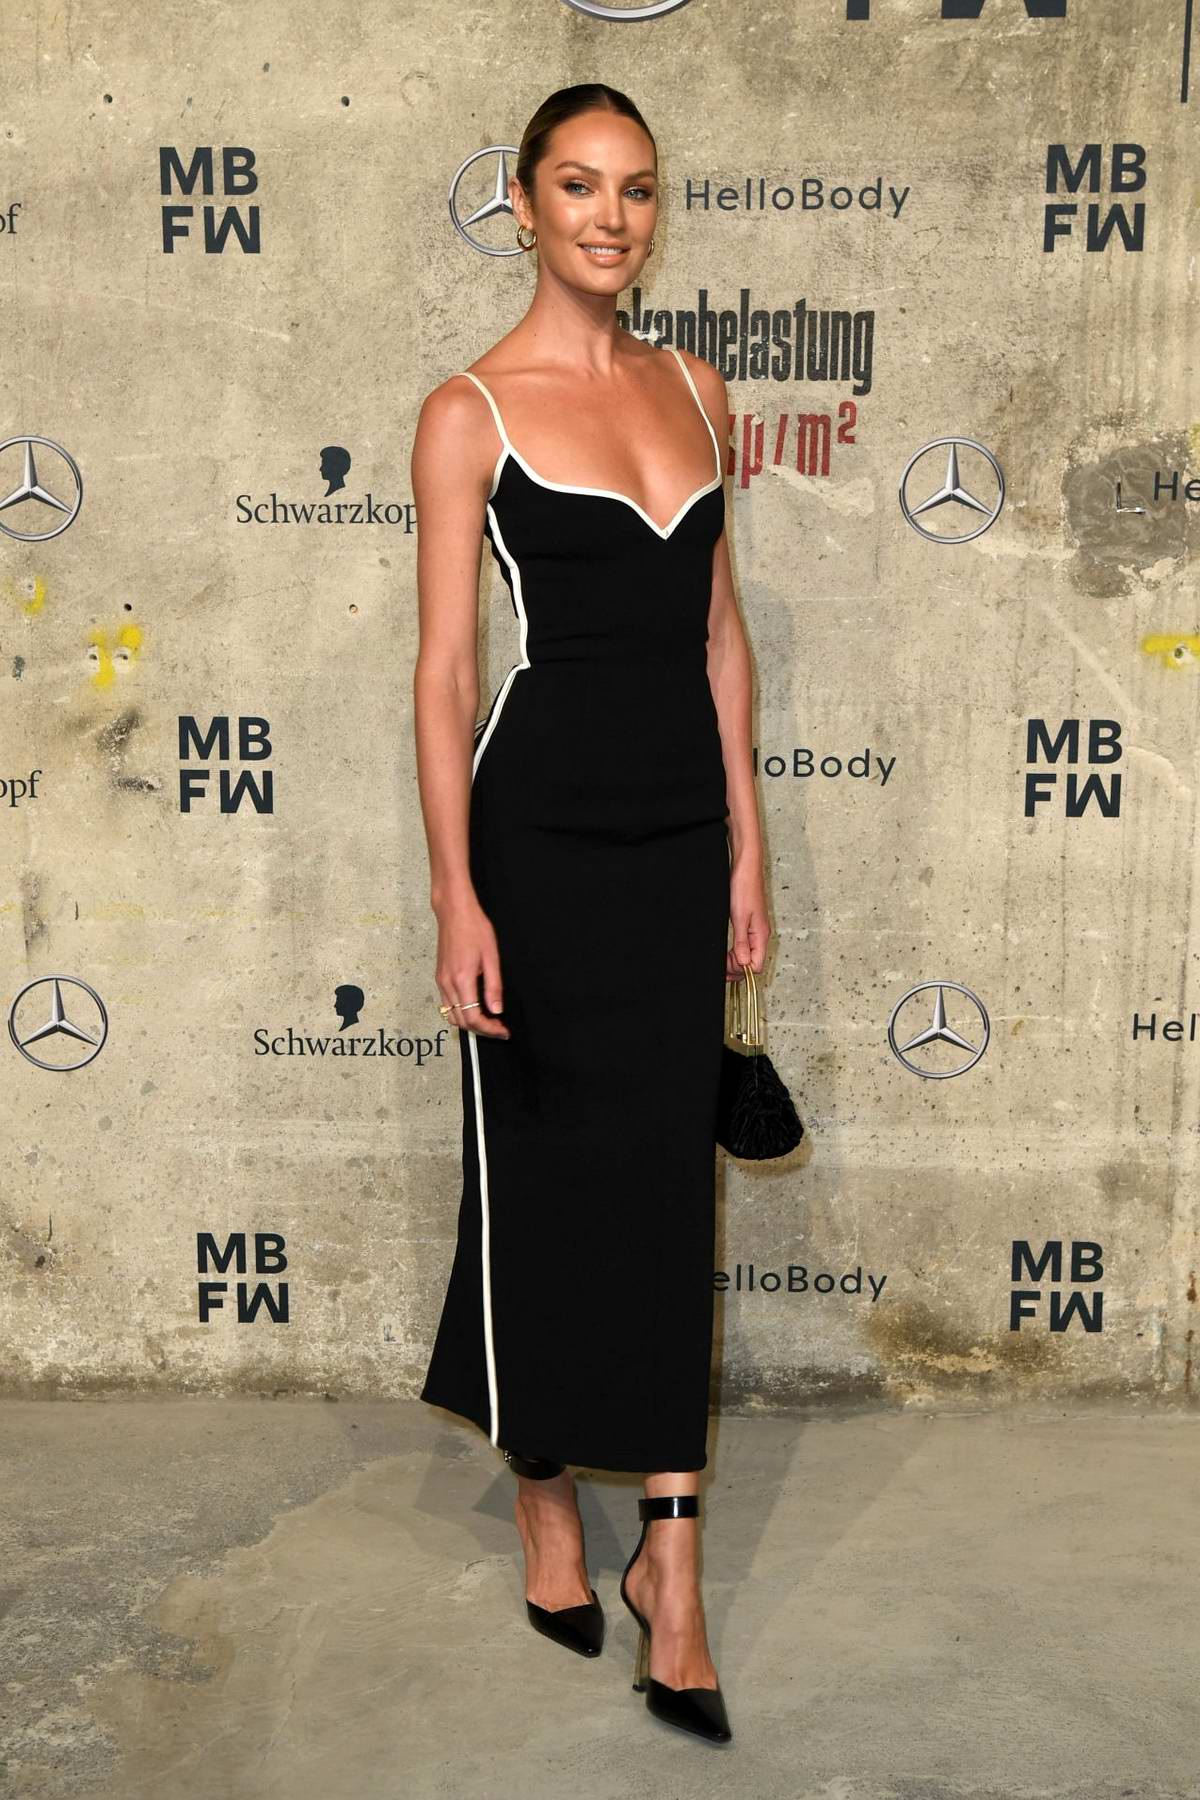 Candice Swanepoel attends the Mercedes-Benz presents Fashion Talents from South Africa show in Berlin, Germany